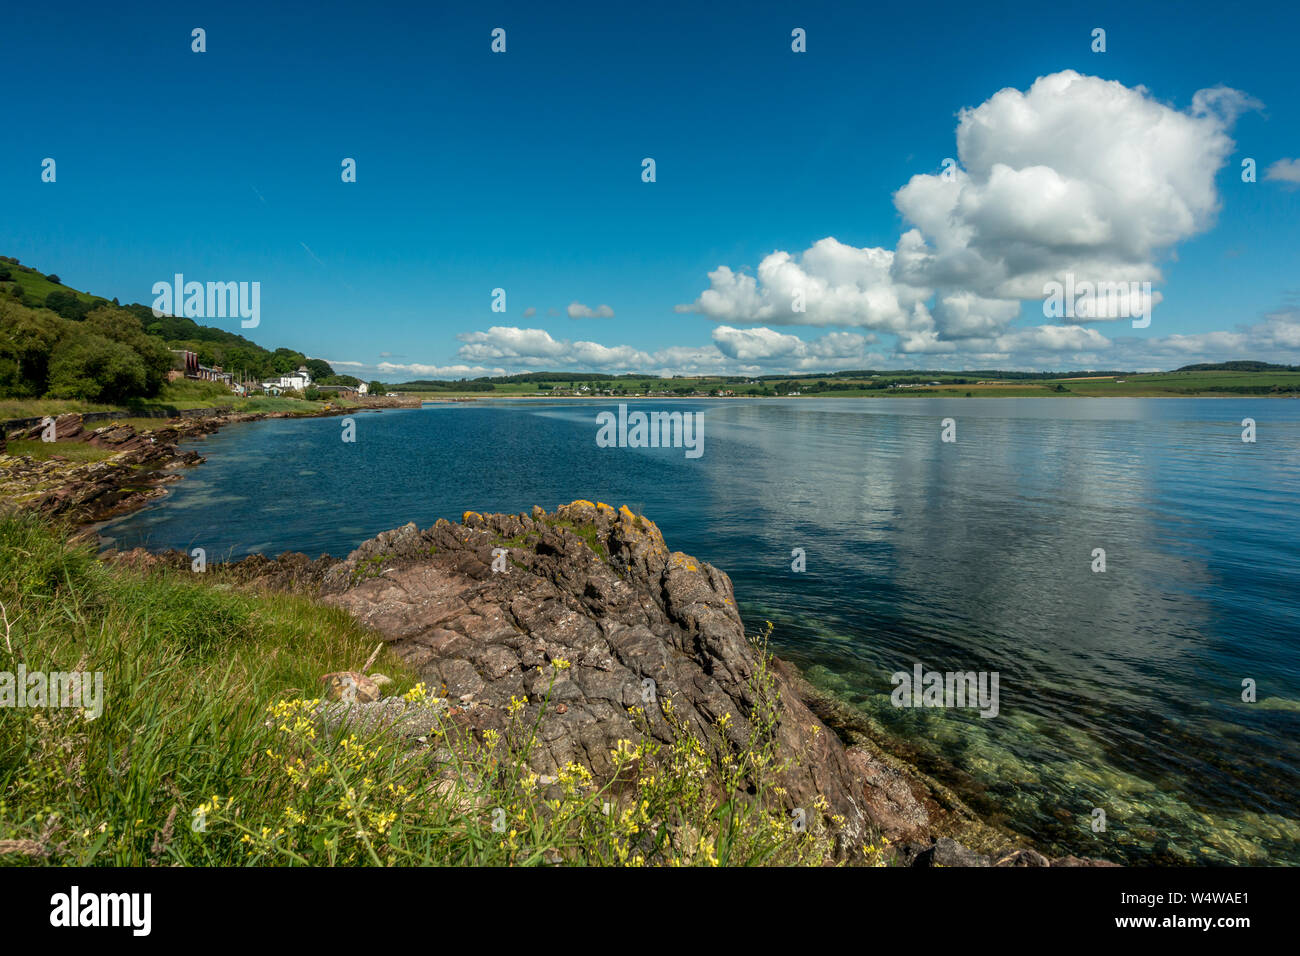 Clear water and blue skies on a beautiful sunny day on the coast at Kilchattan Bay, Isle of Bute, Scotland Stock Photo